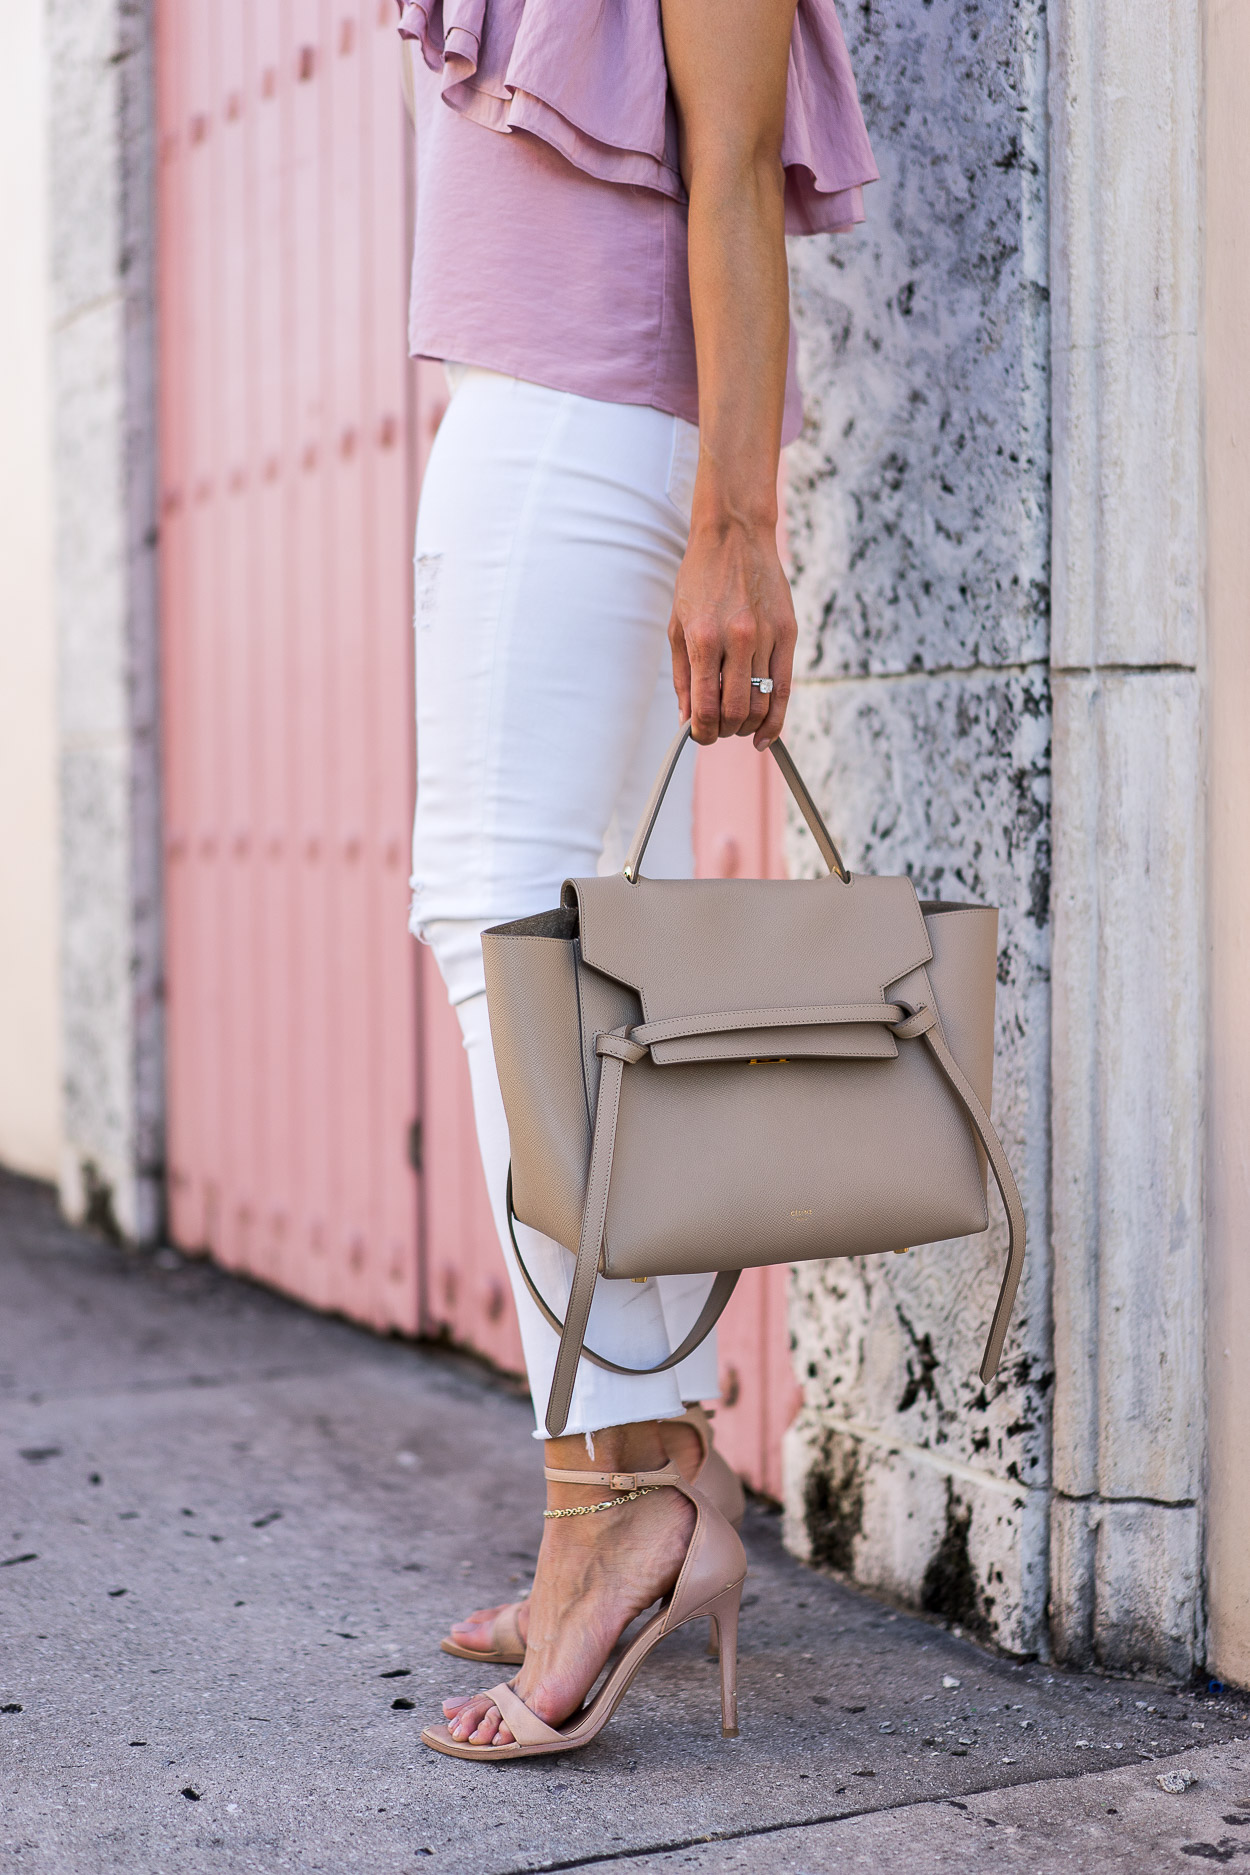 ... Rose · Celine Belt Bag review shares pros and cons of luxury items by  AGlamLifestyle blogger ... eff43708210f6